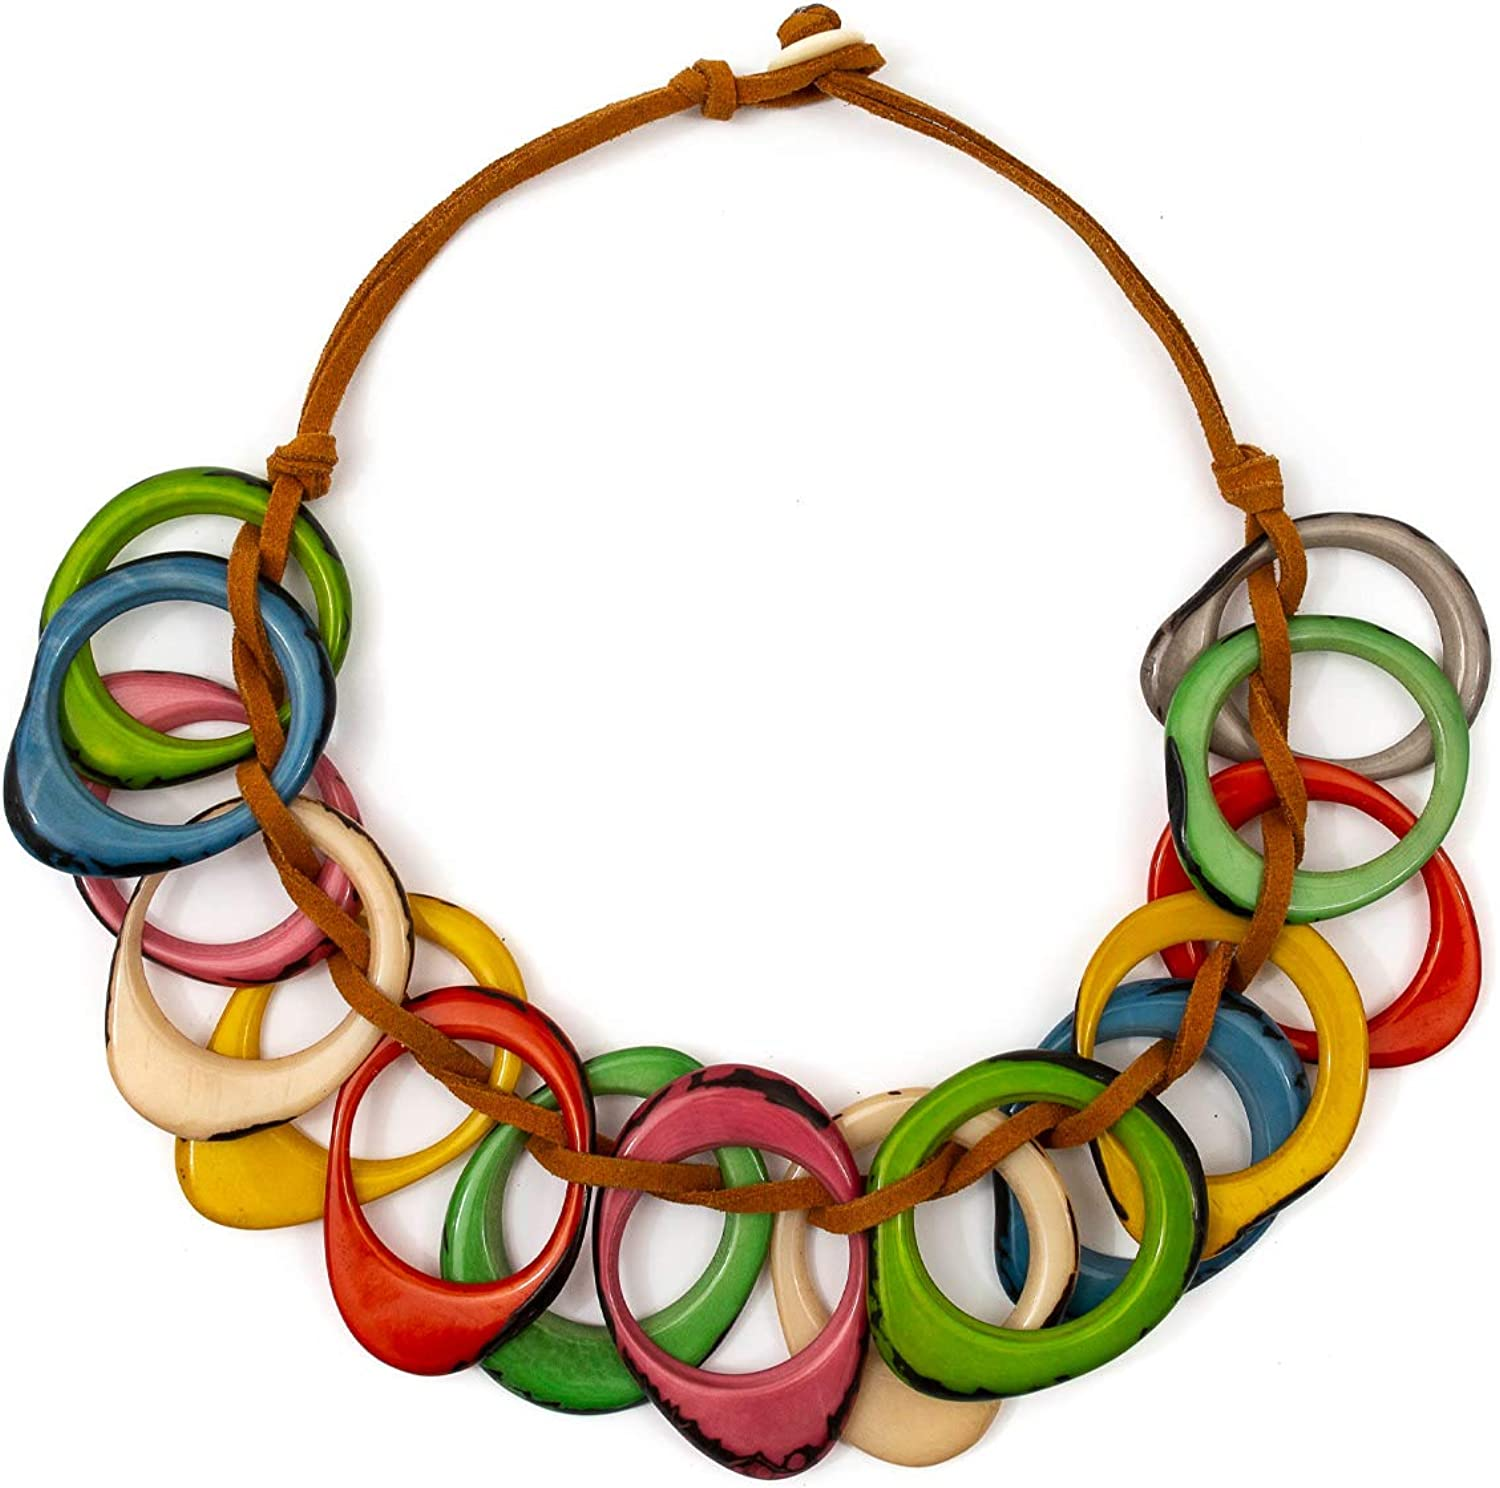 Tagua Dawn Fashion Necklace Tagua Nut Ethical Bead Slow Fashion Beaded Wooden Eco Friendly Boho Unique Handmade Statement Jewelry